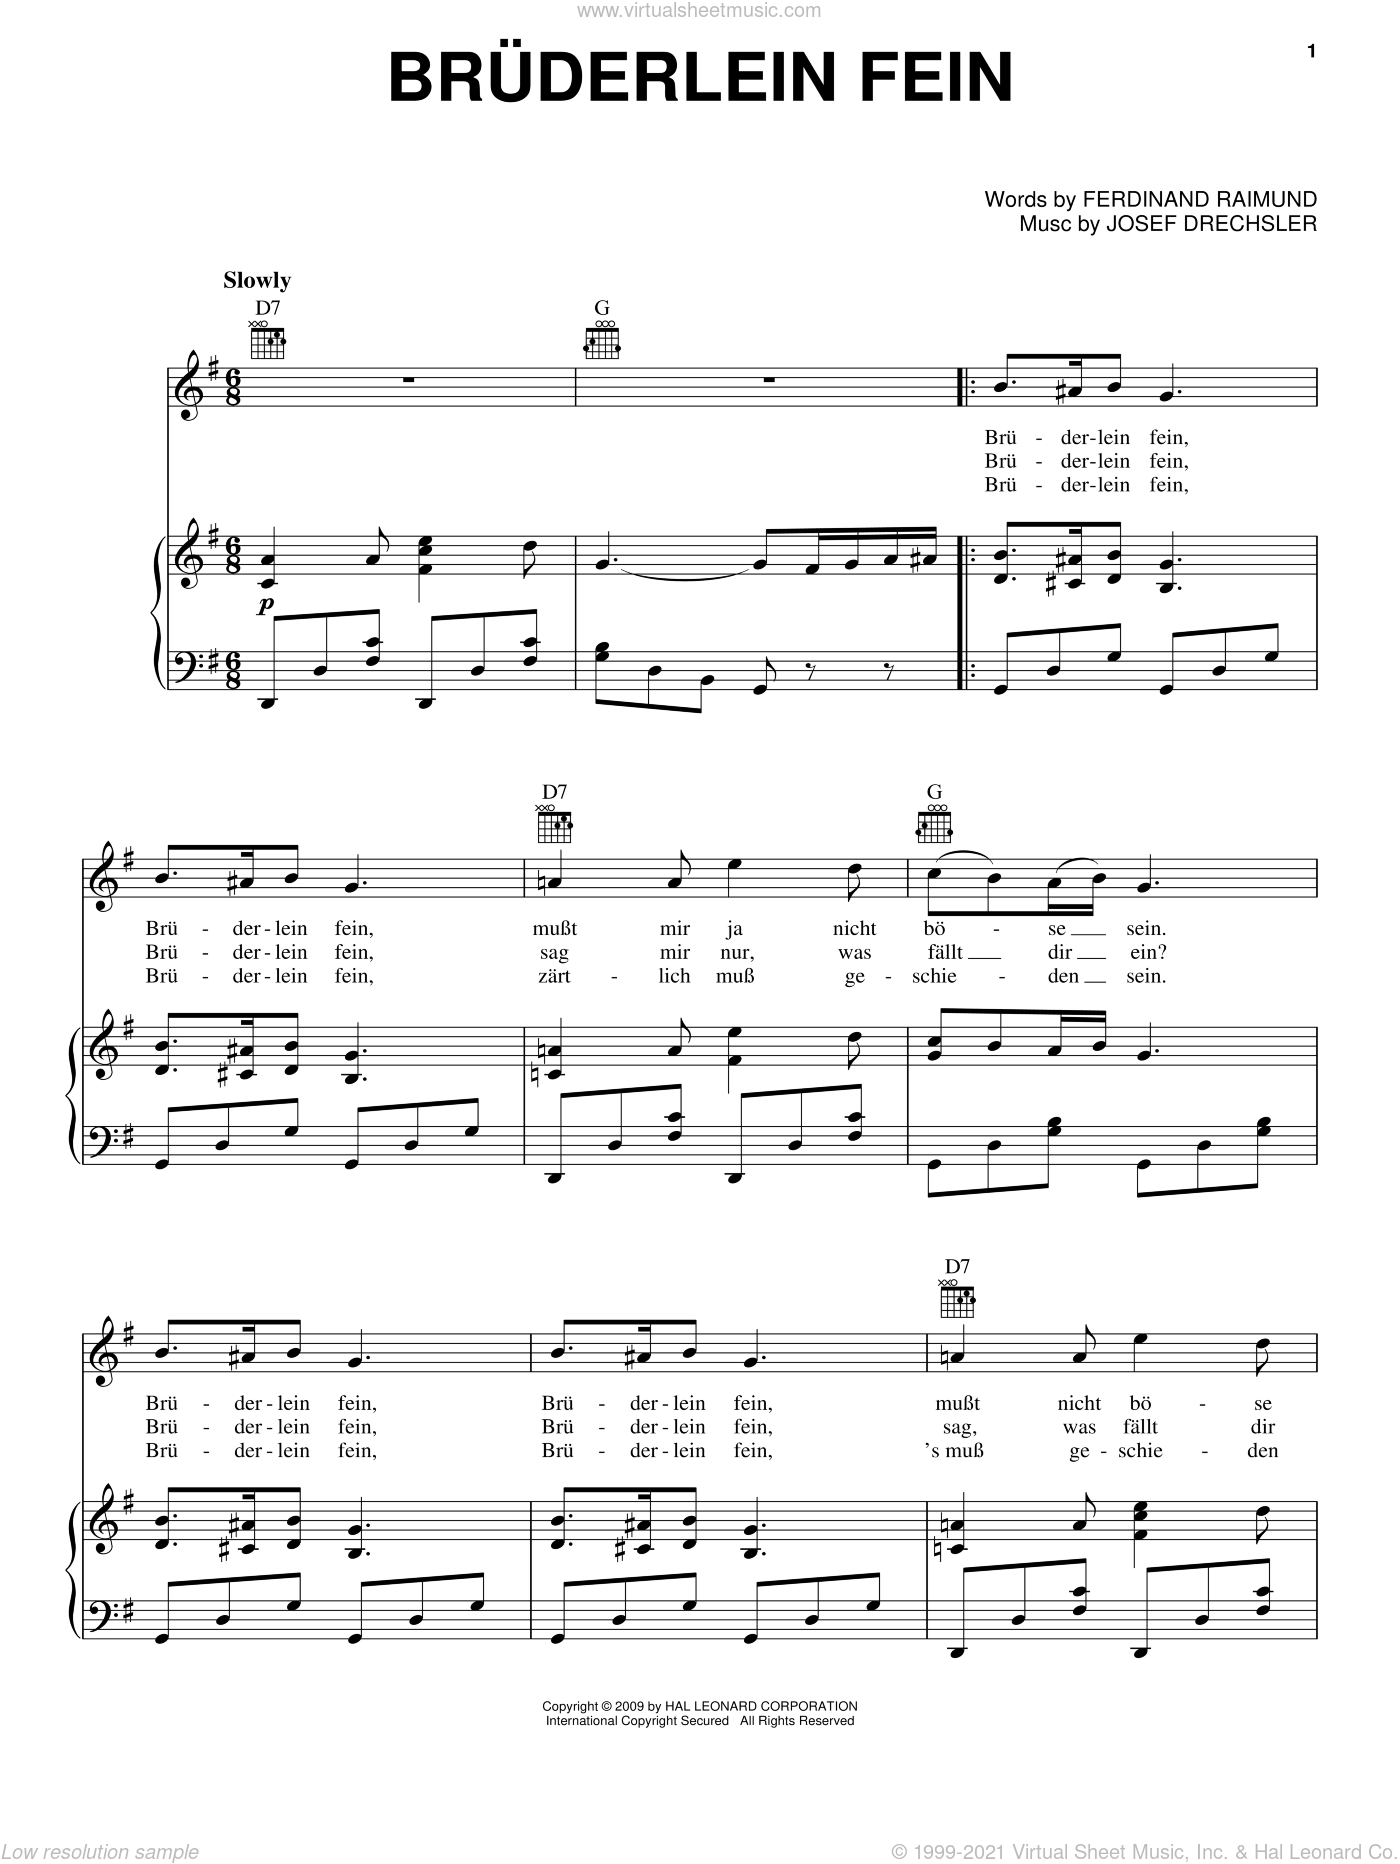 Bruderlein Fein sheet music for voice, piano or guitar by Ferdinand Raimund. Score Image Preview.